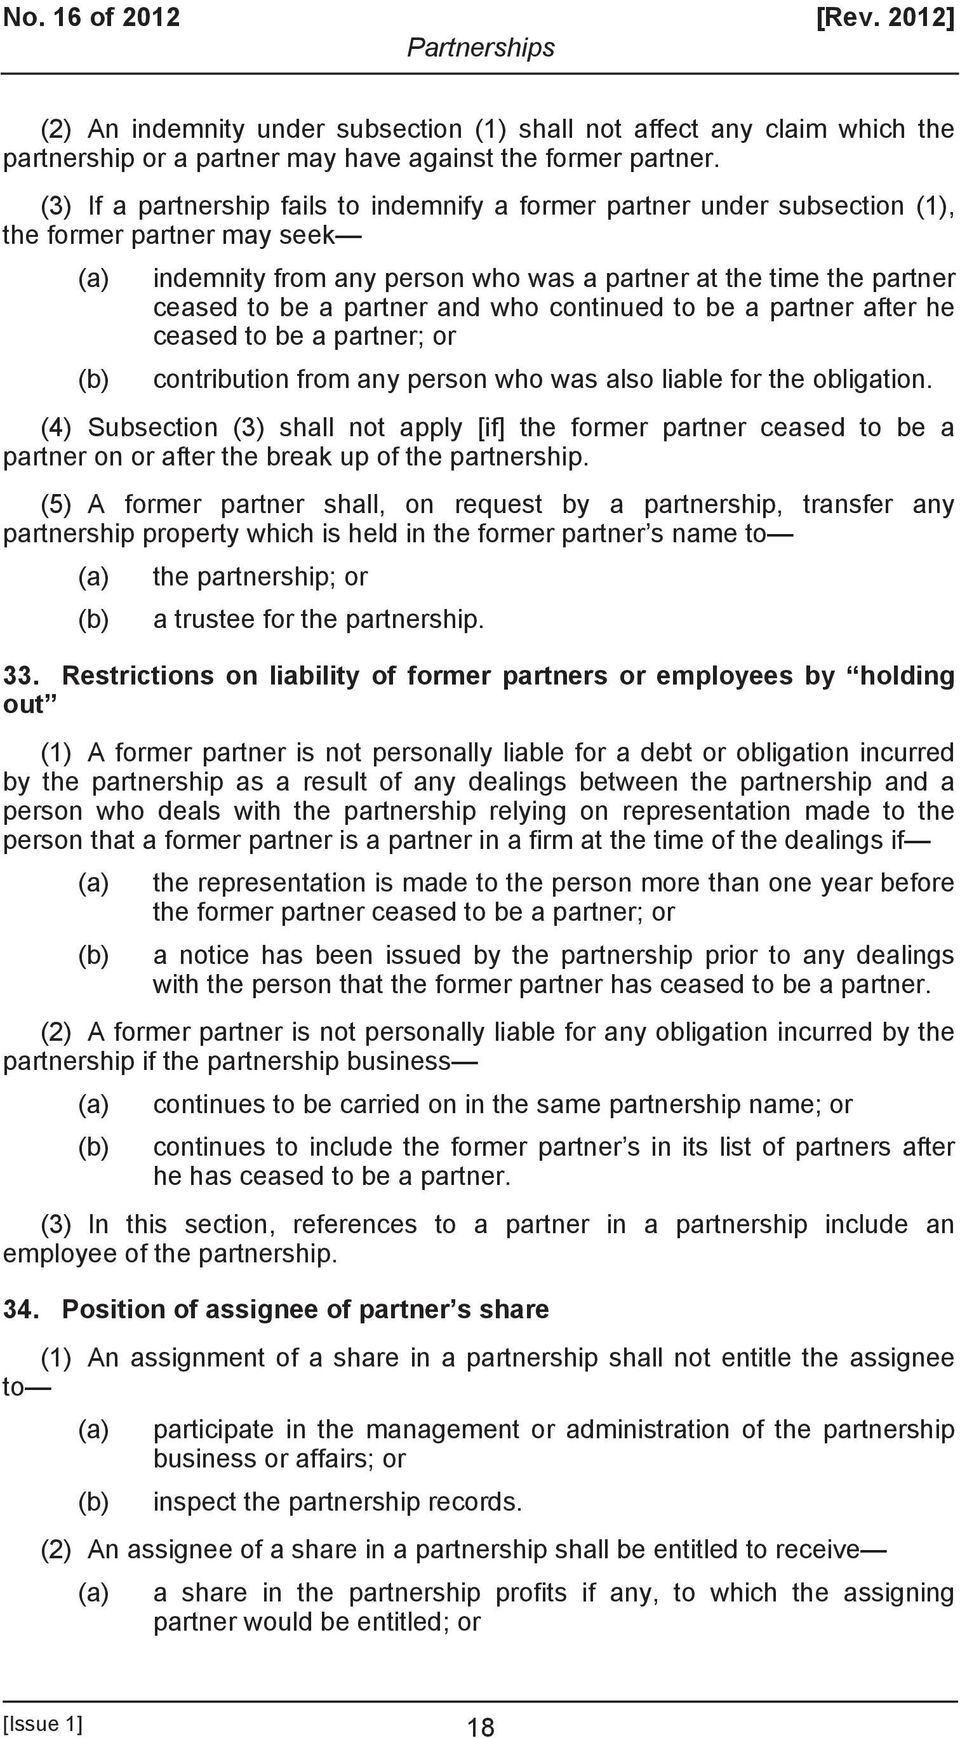 partner and who continued to be a partner after he ceased to be a partner; or (b) contribution from any person who was also liable for the obligation.